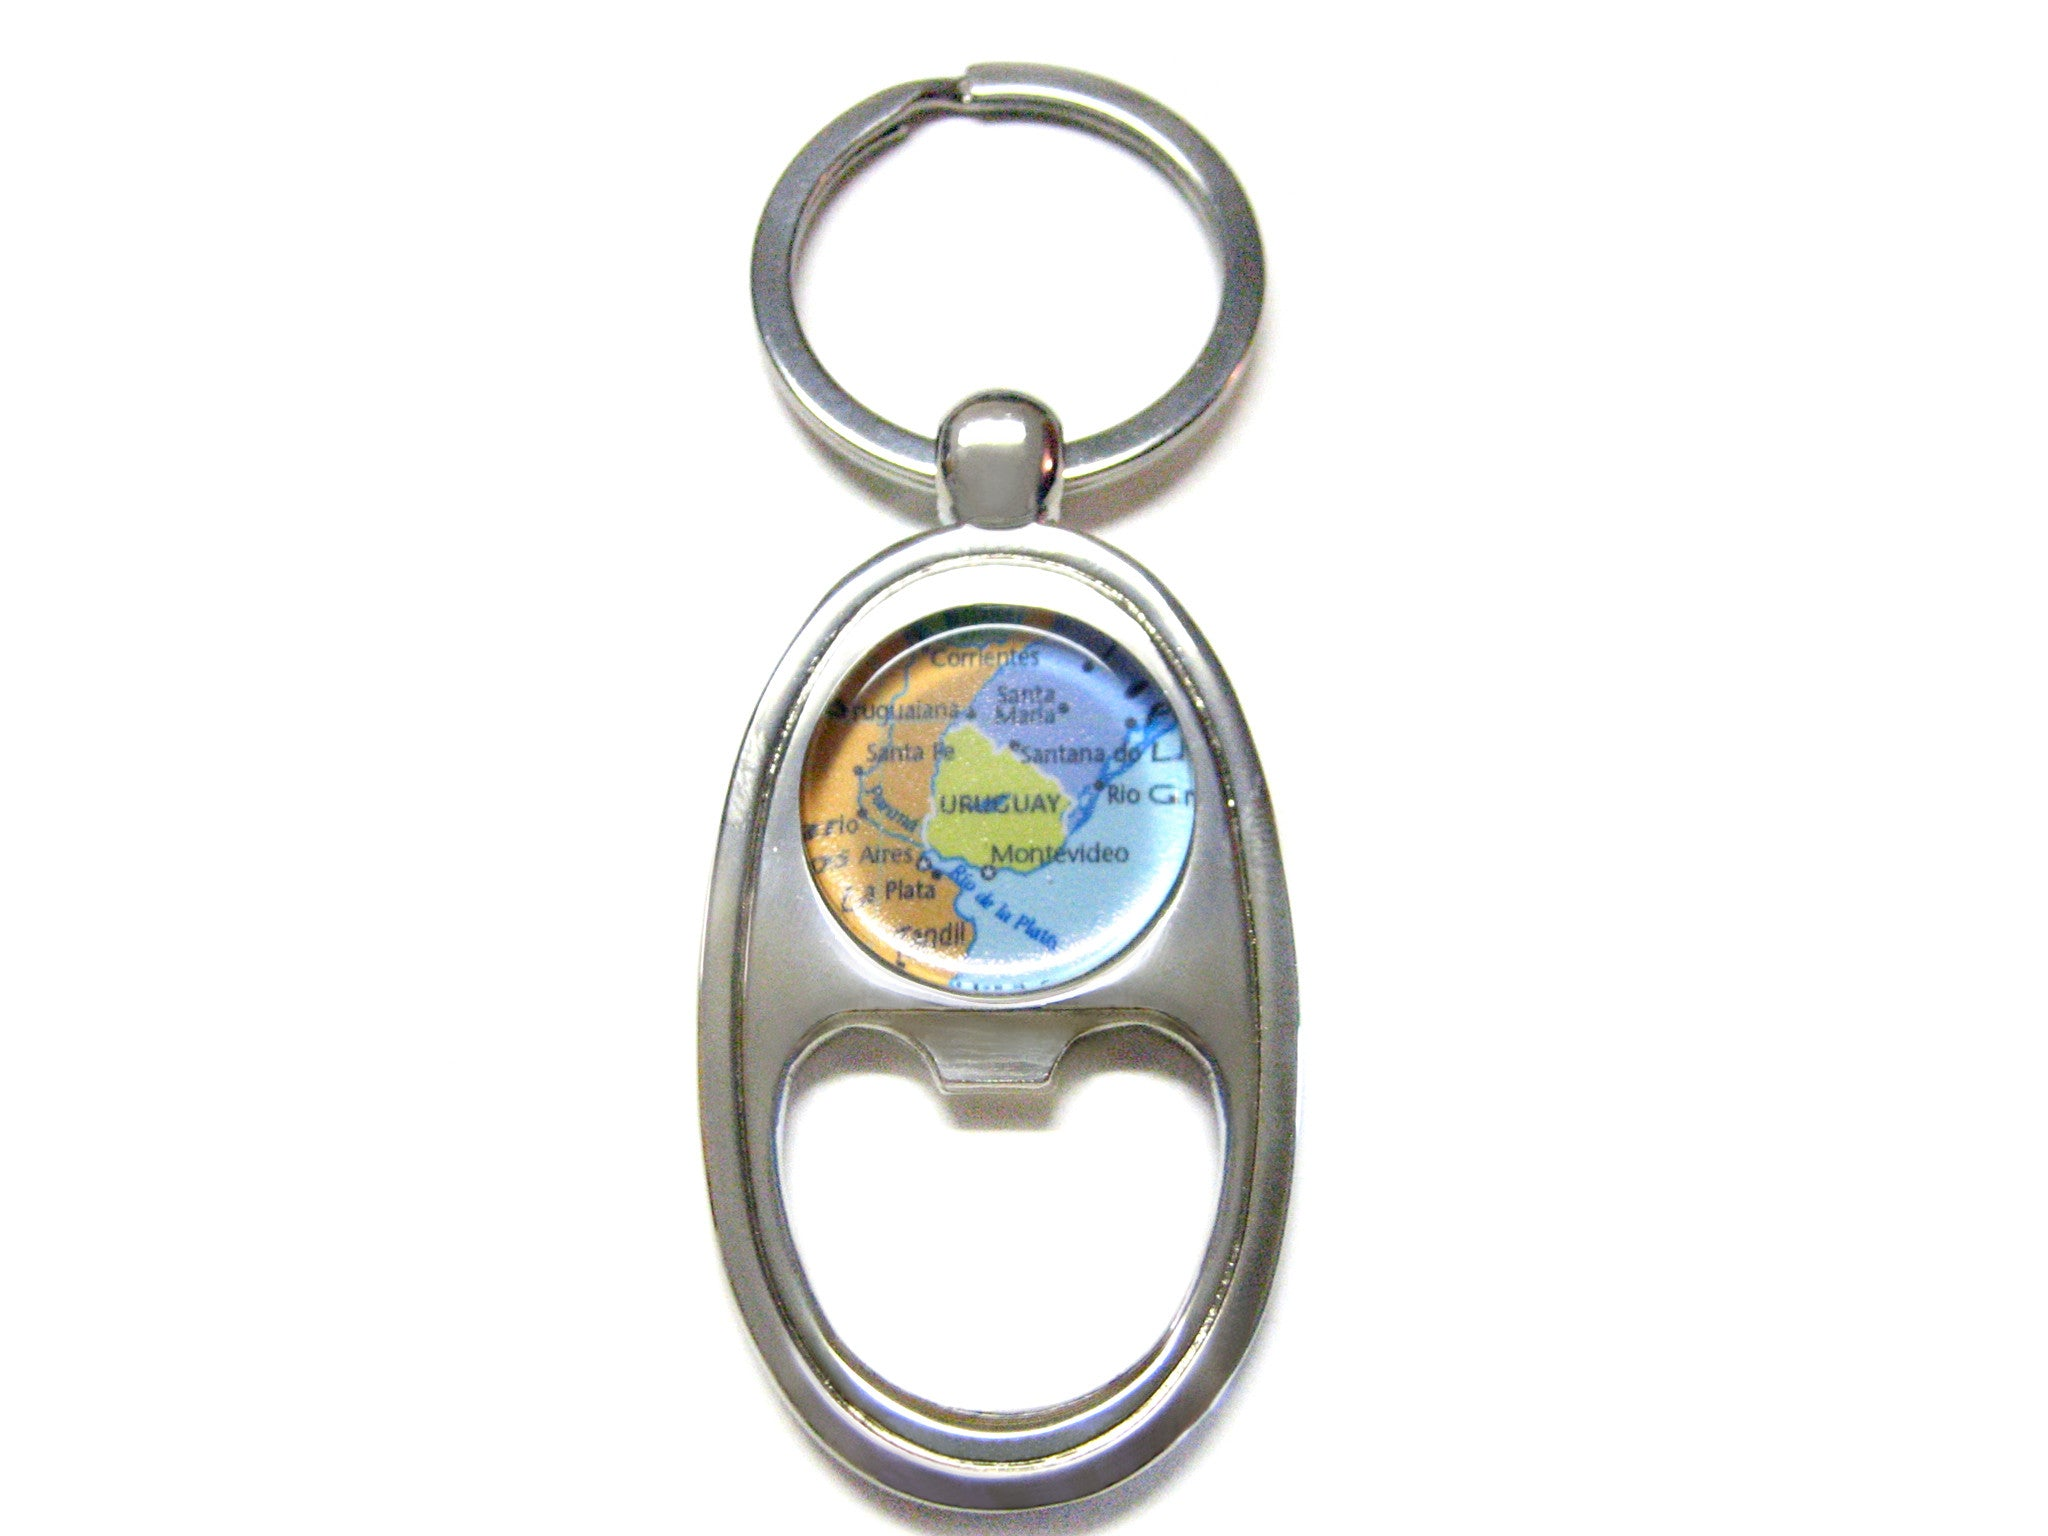 Uruguay Map Bottle Opener Key Chain